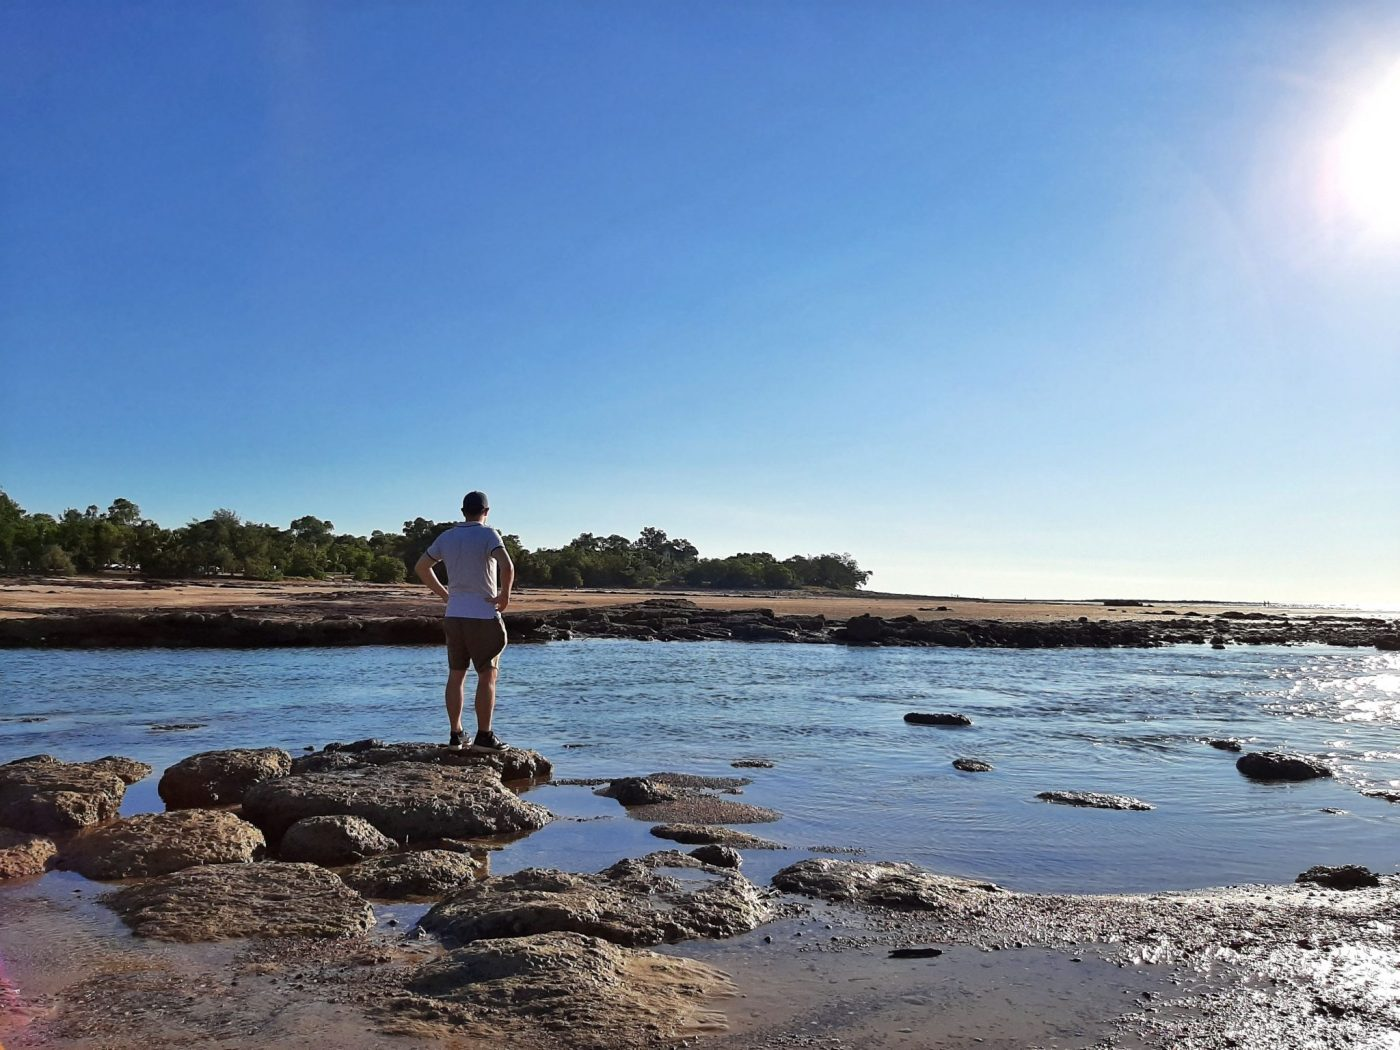 Enjoying the view and landscape - Darwin